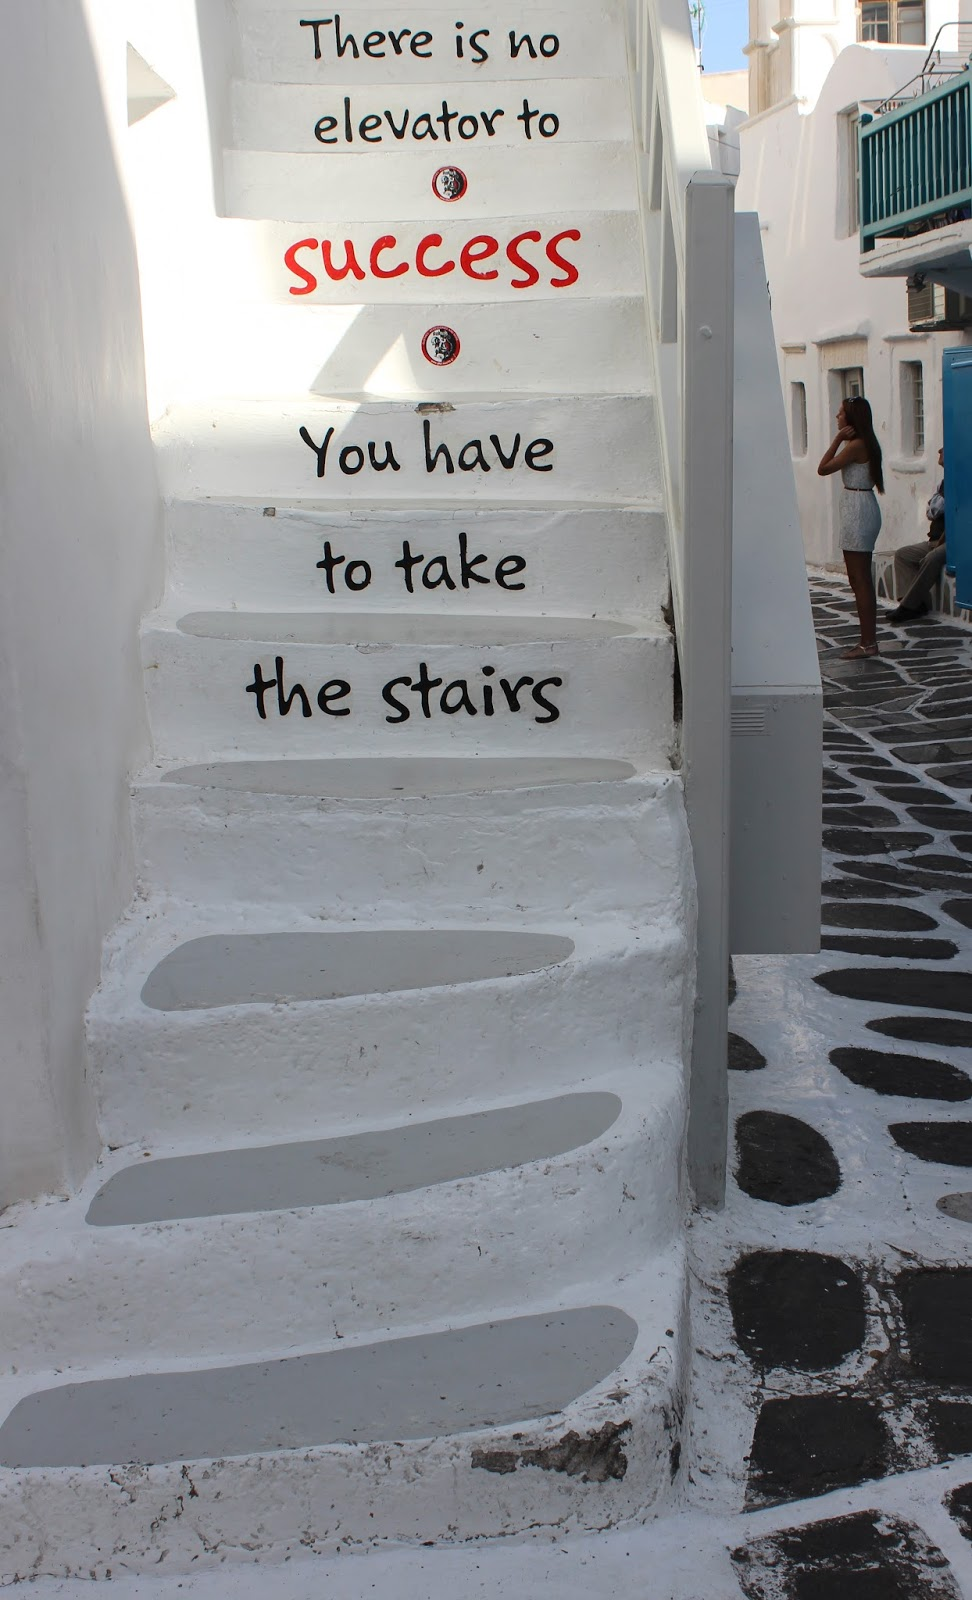 Mykonos steps - There is no elevator to success, you have to take the stairs